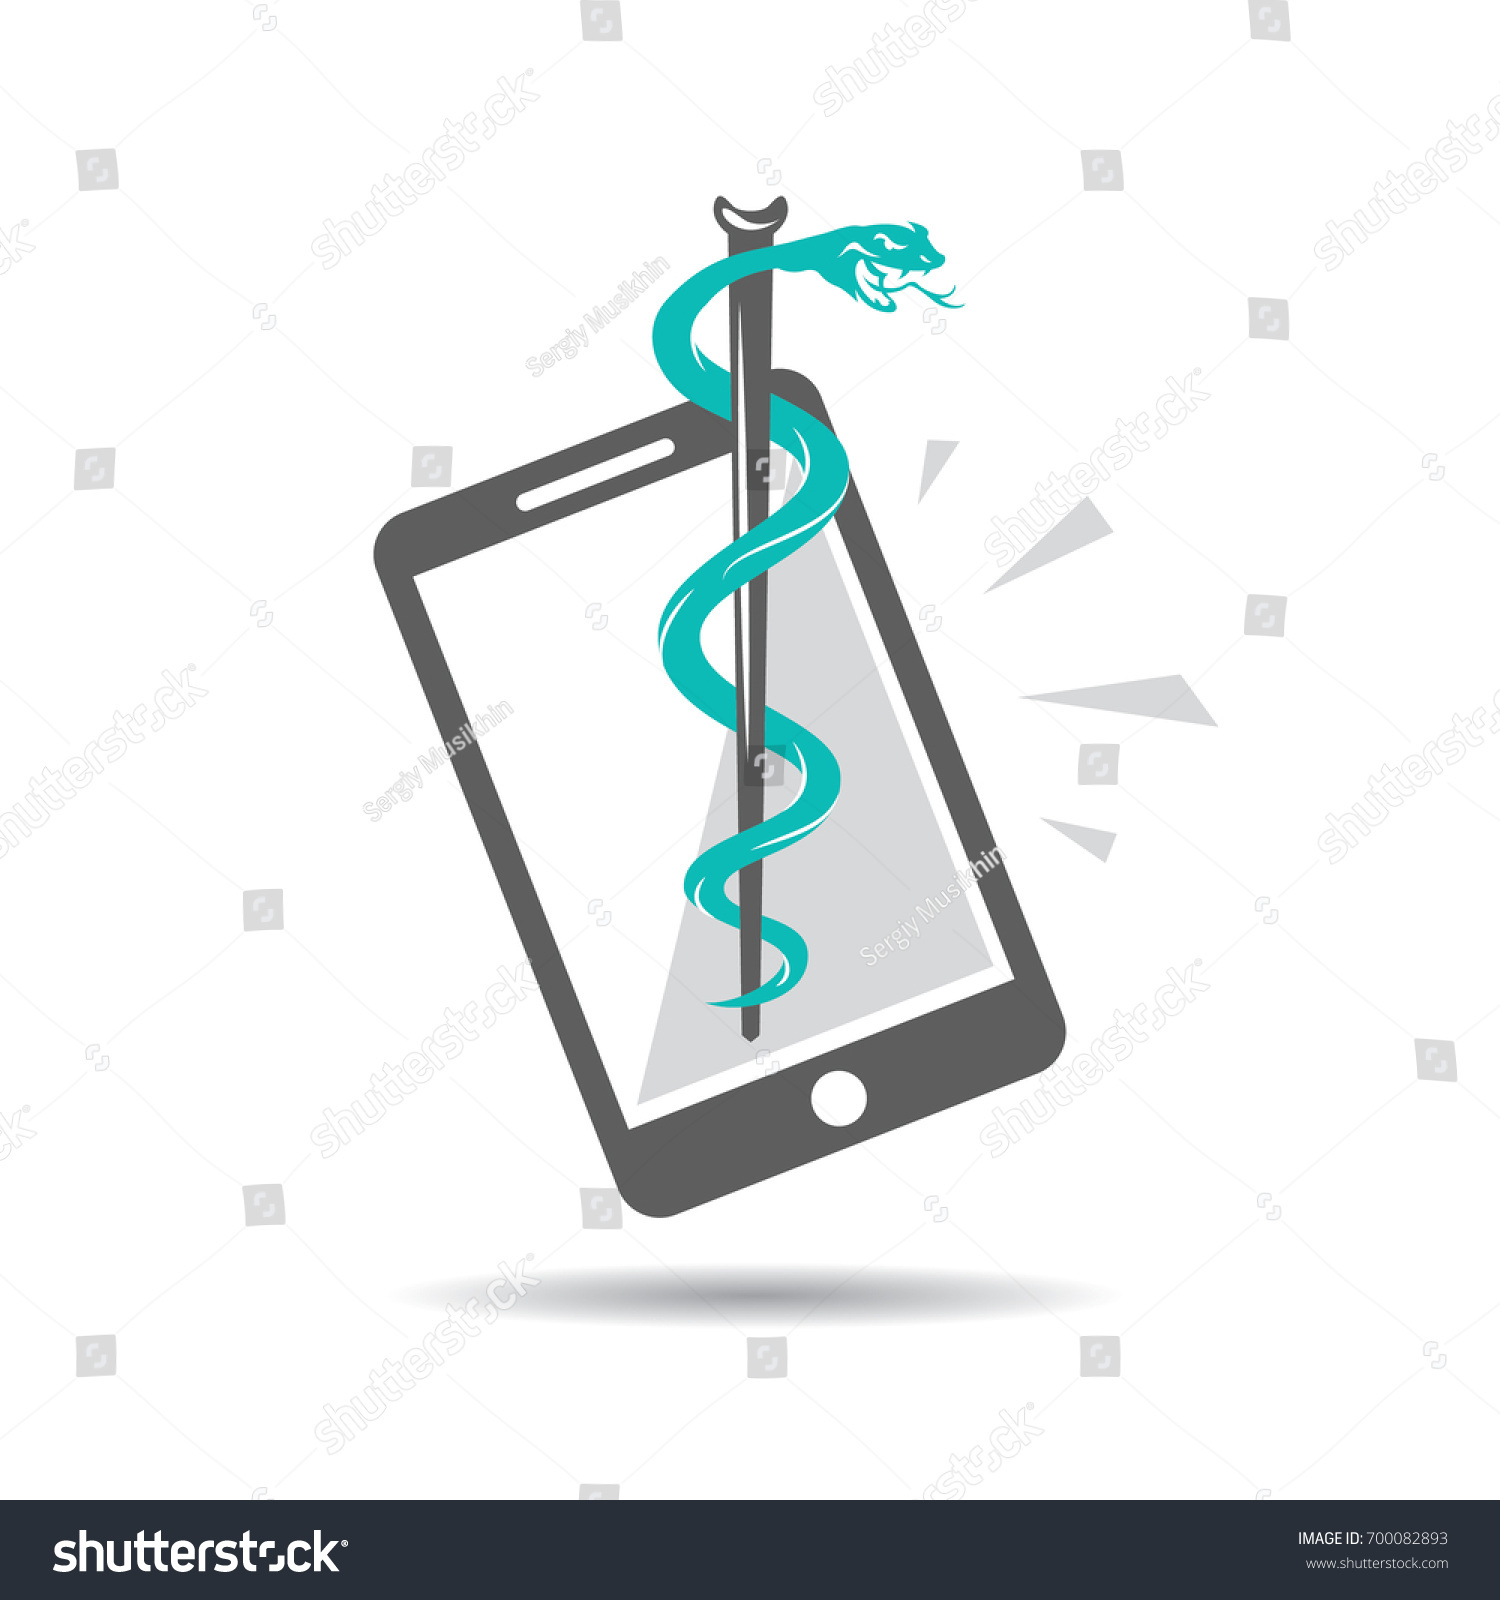 Caduceus symbol snake intertwined around rod stock vector caduceus symbol snake intertwined around a rod on a background of a mobile phone healing biocorpaavc